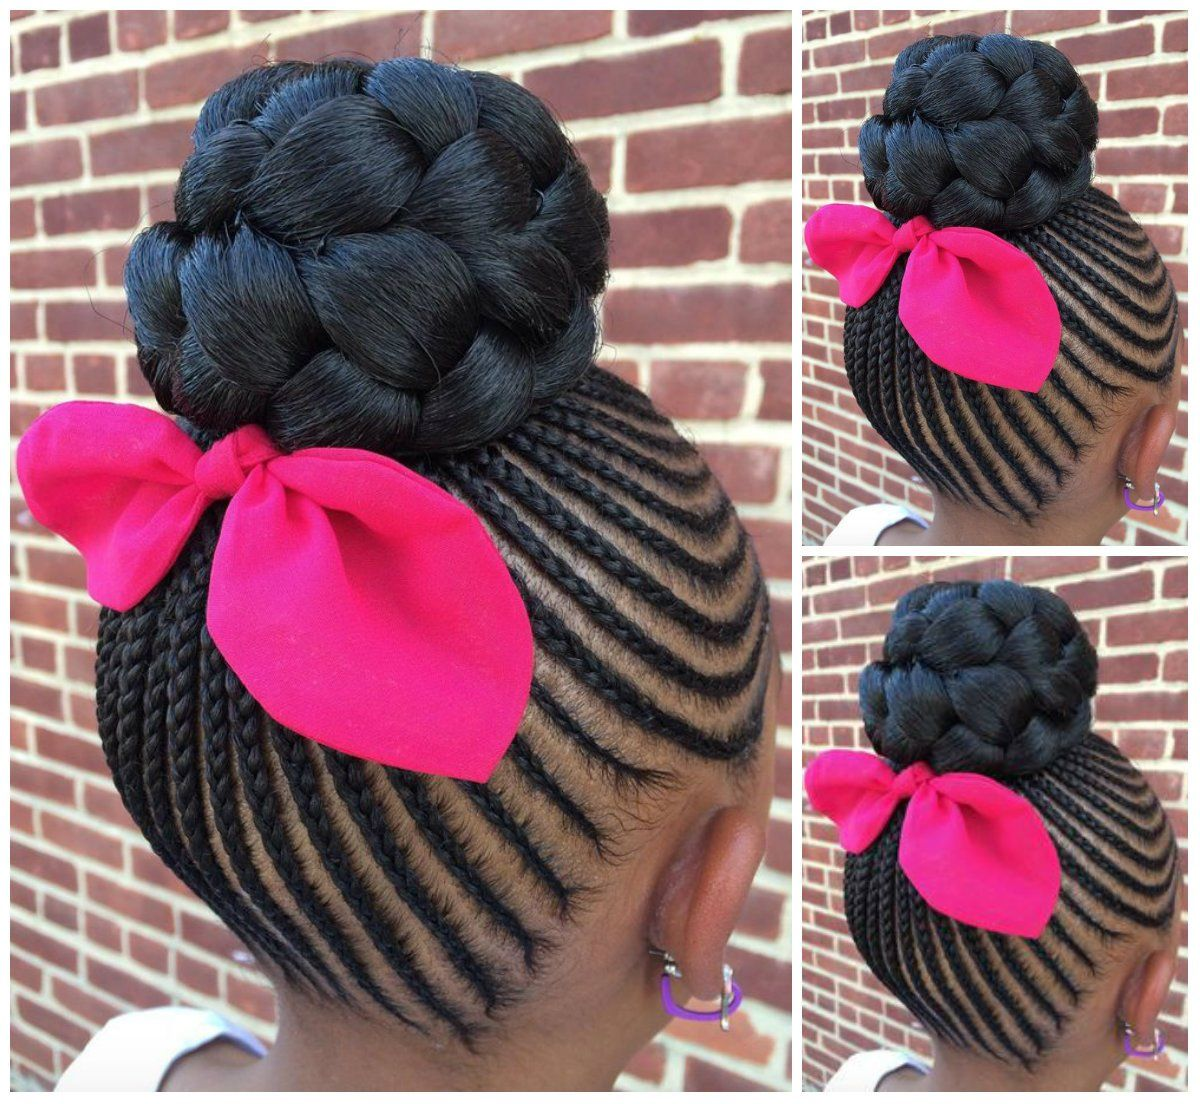 Check Out These Braided Cornrows With Buns For Little Black Girls And Get Inspiration O Black Natural Hairstyles Kids Braided Hairstyles Little Girl Hairstyles